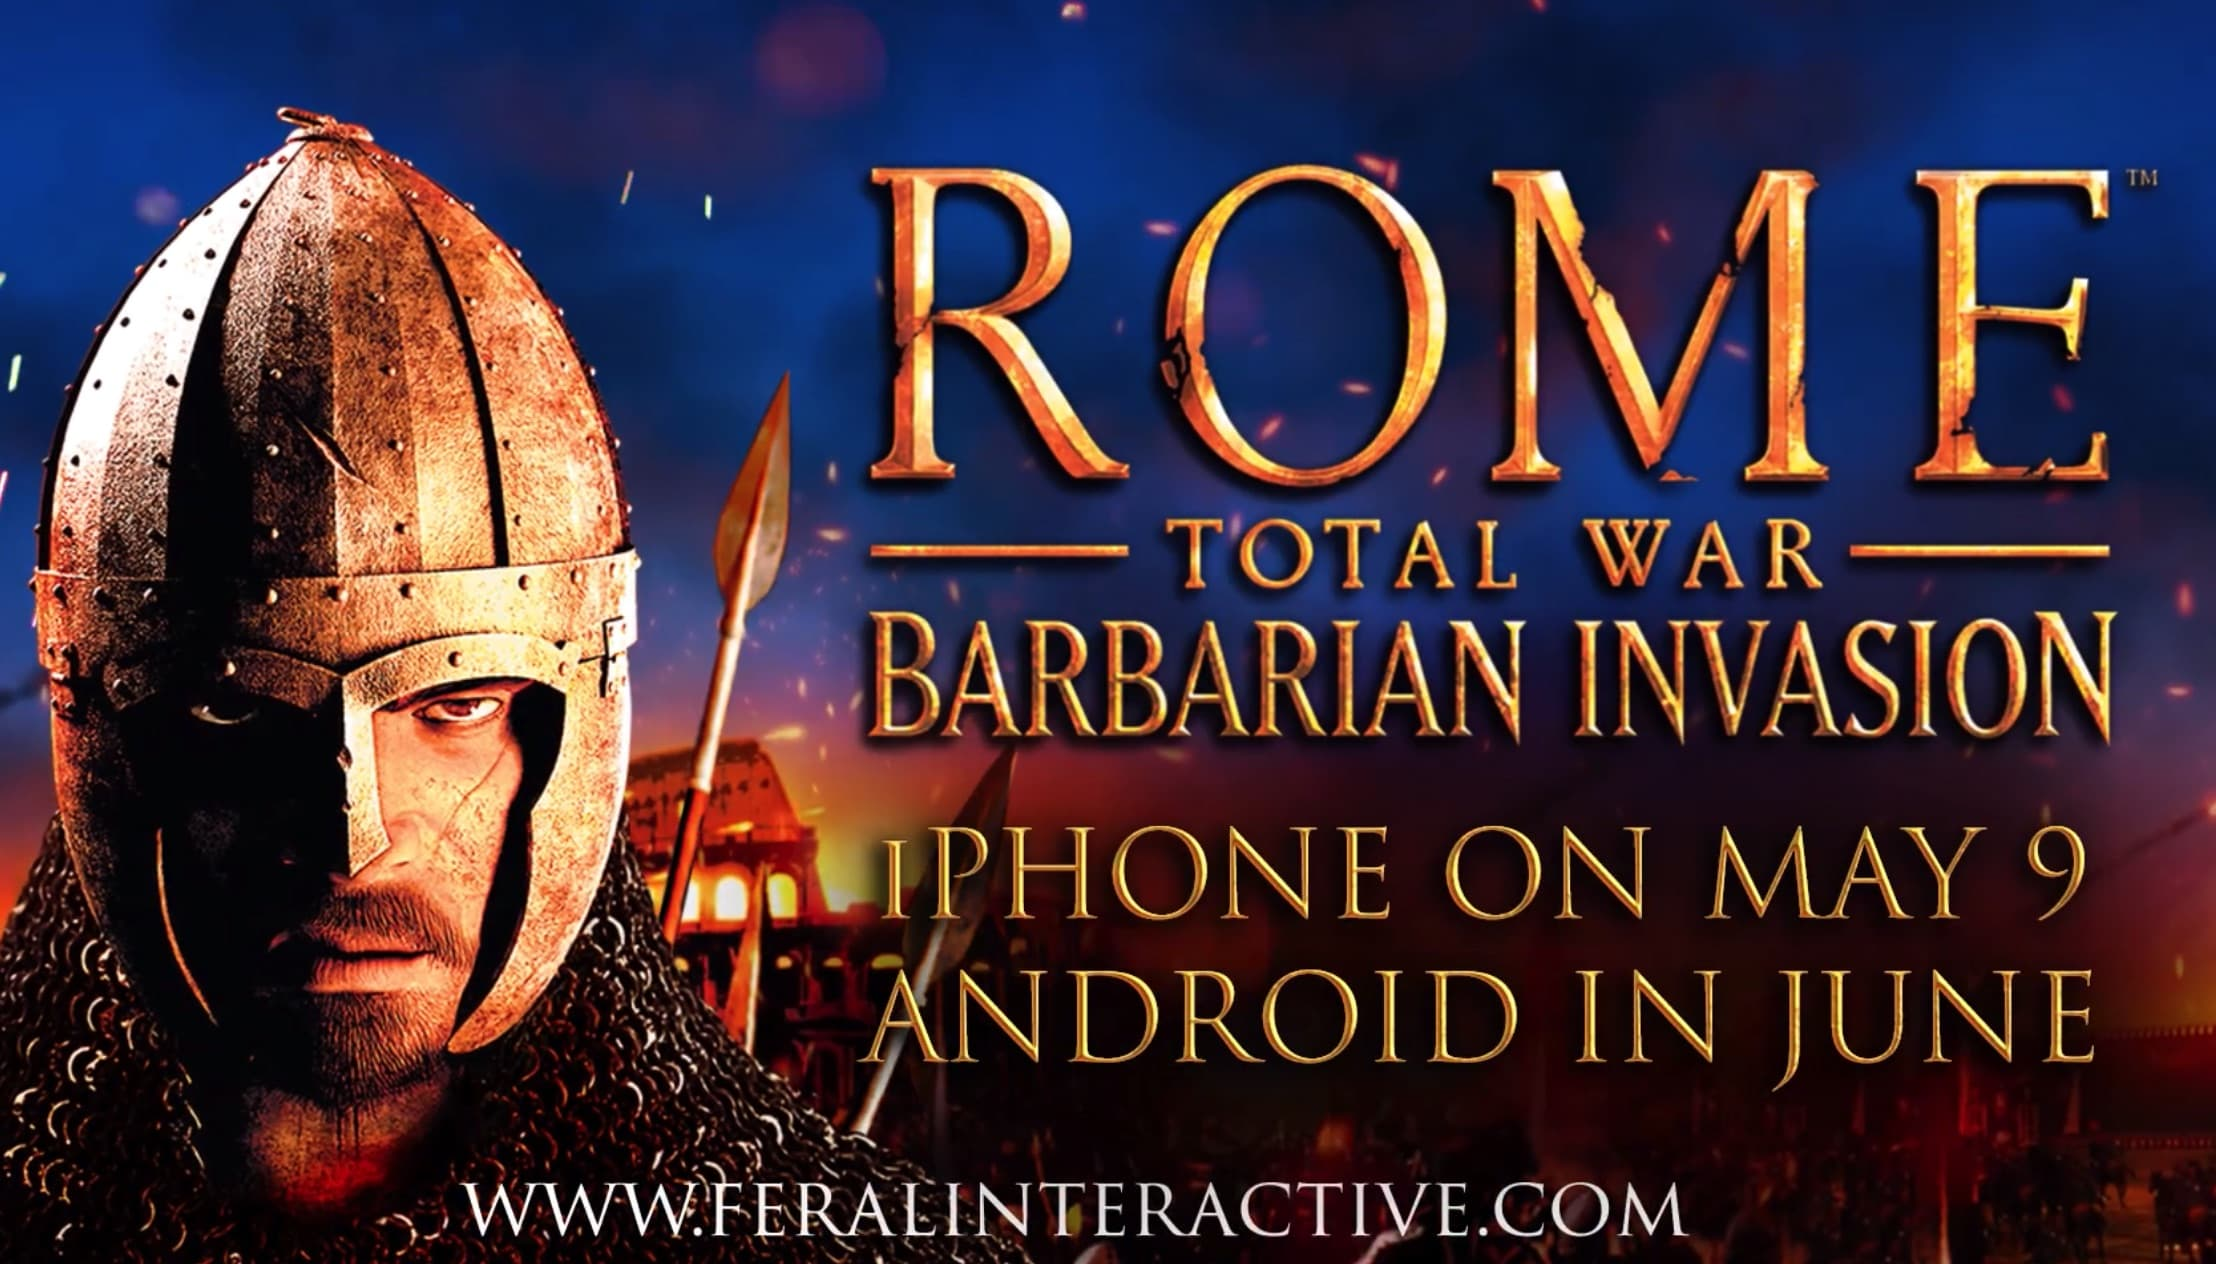 Rome Total War Barbarian Invasion 2